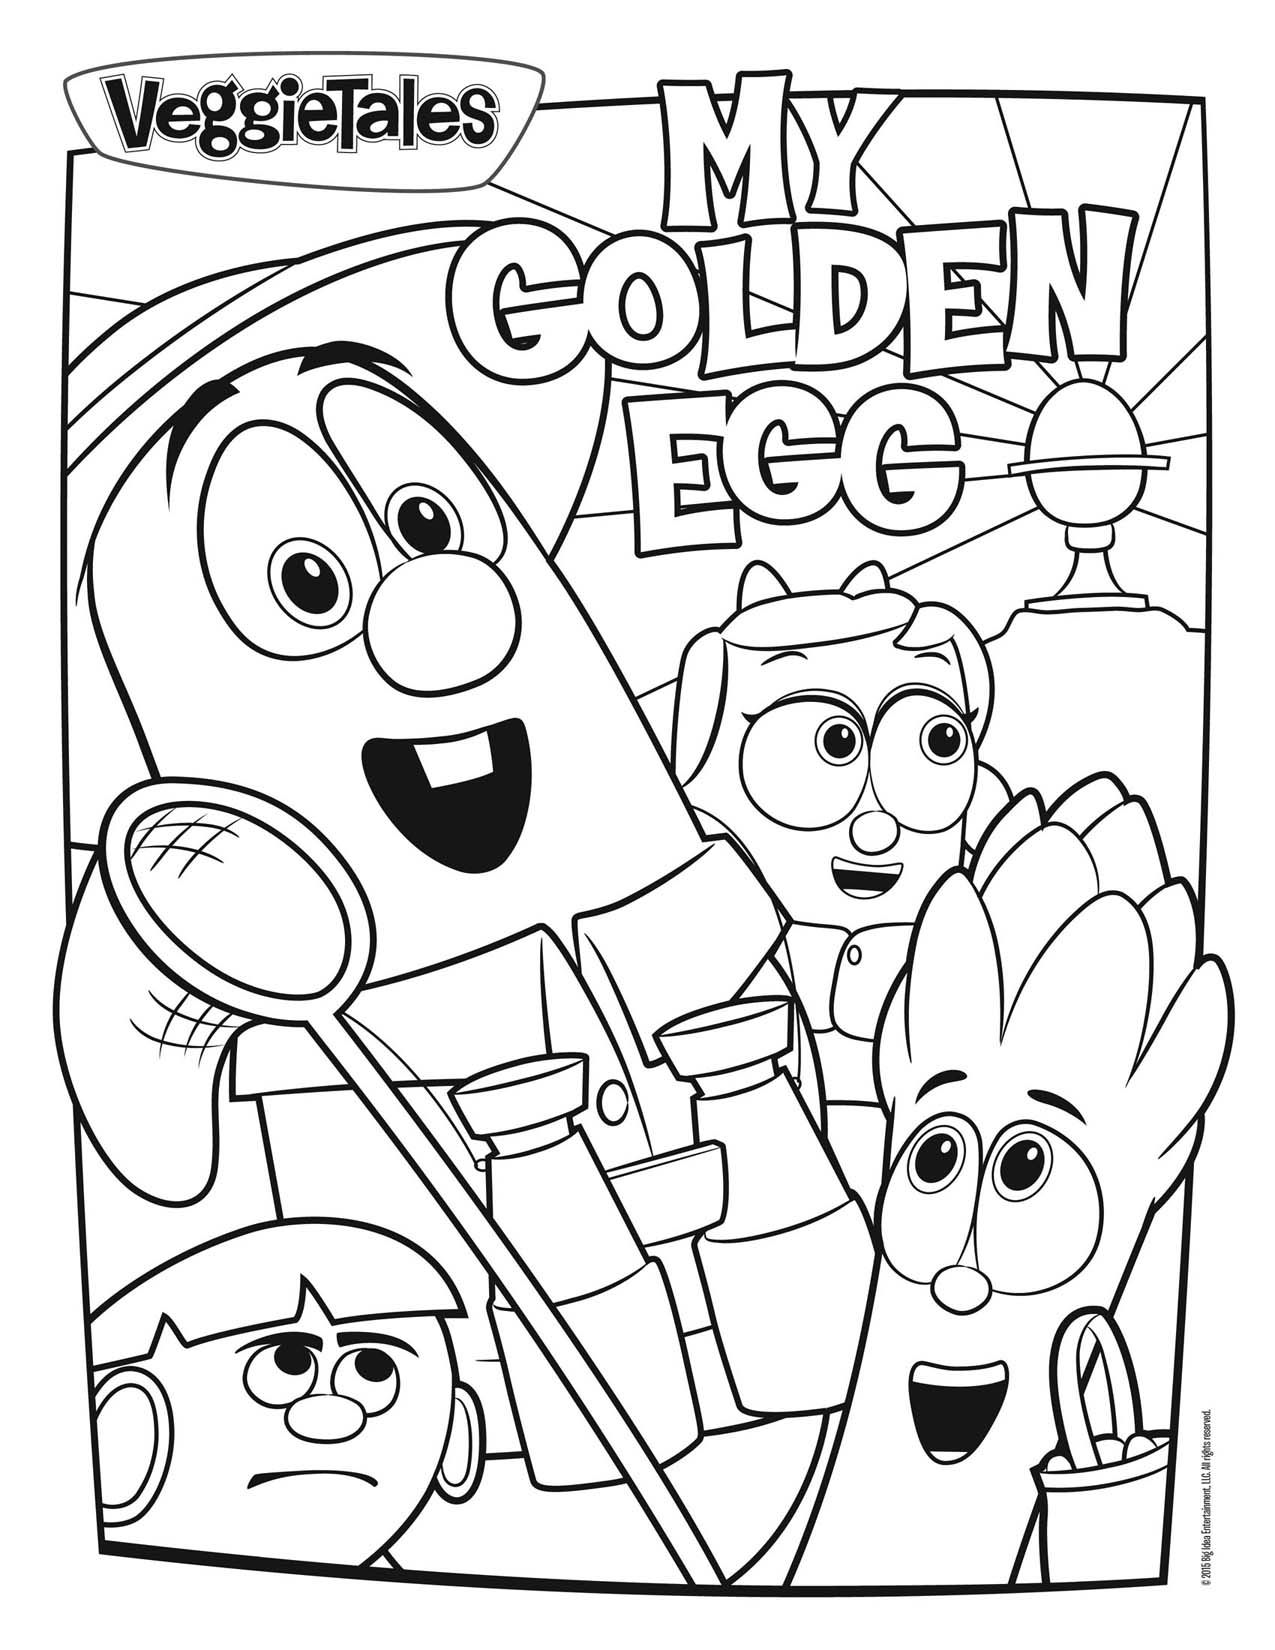 Veggie Tales Easter Coloring Pages - Coloring Home